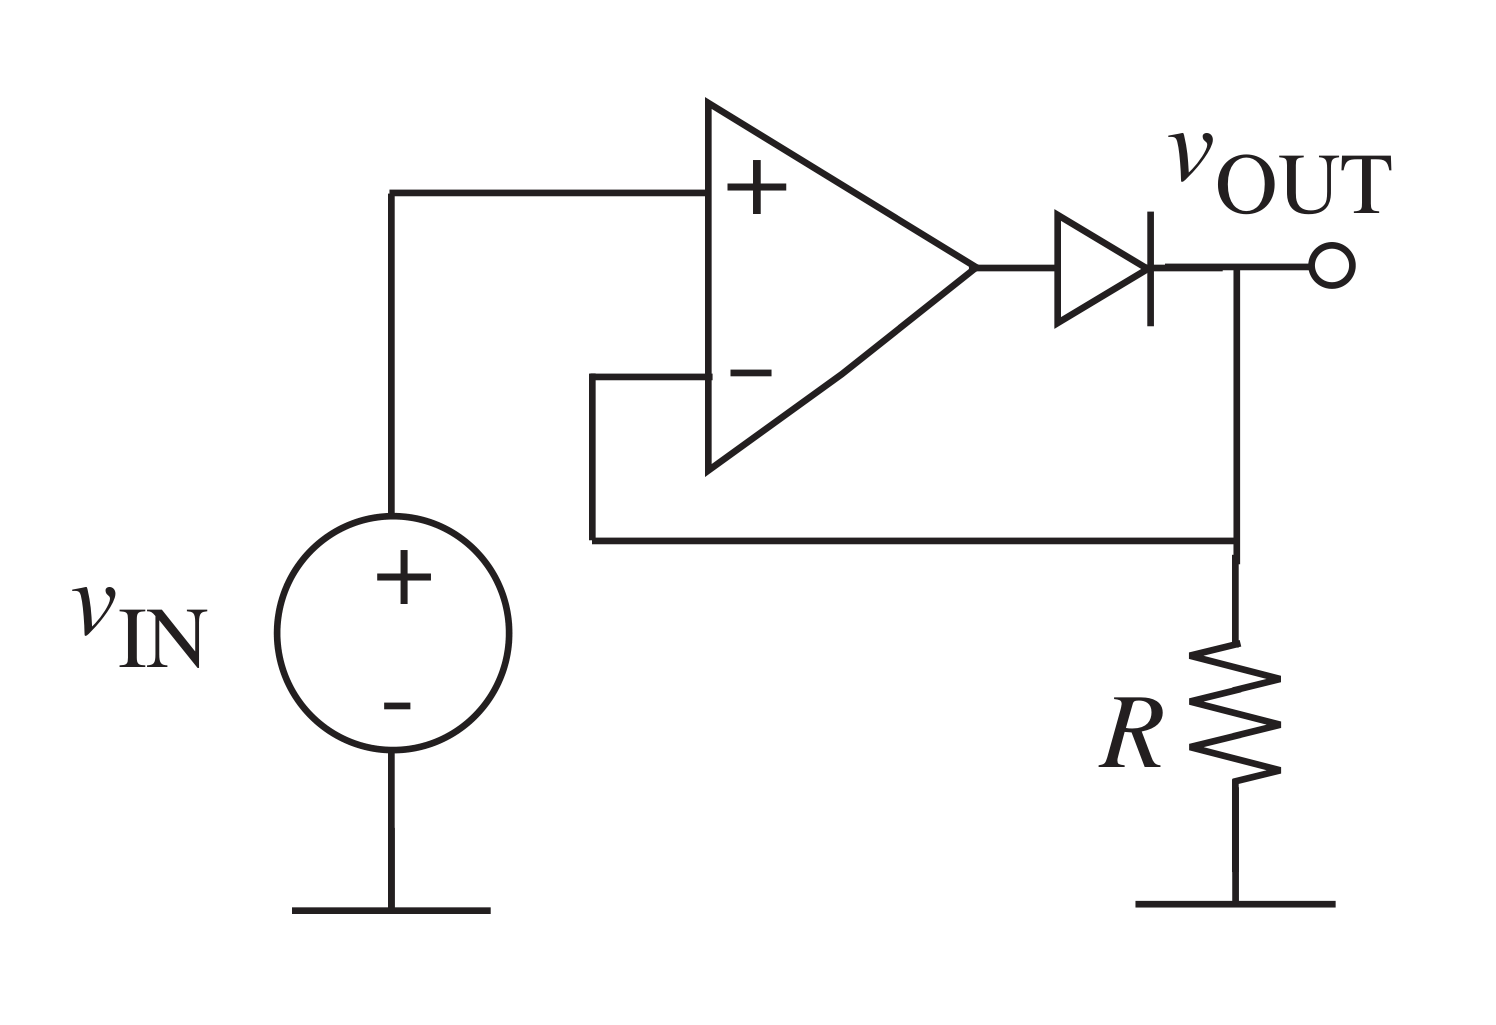 Diode Circuit Problems With Solutions